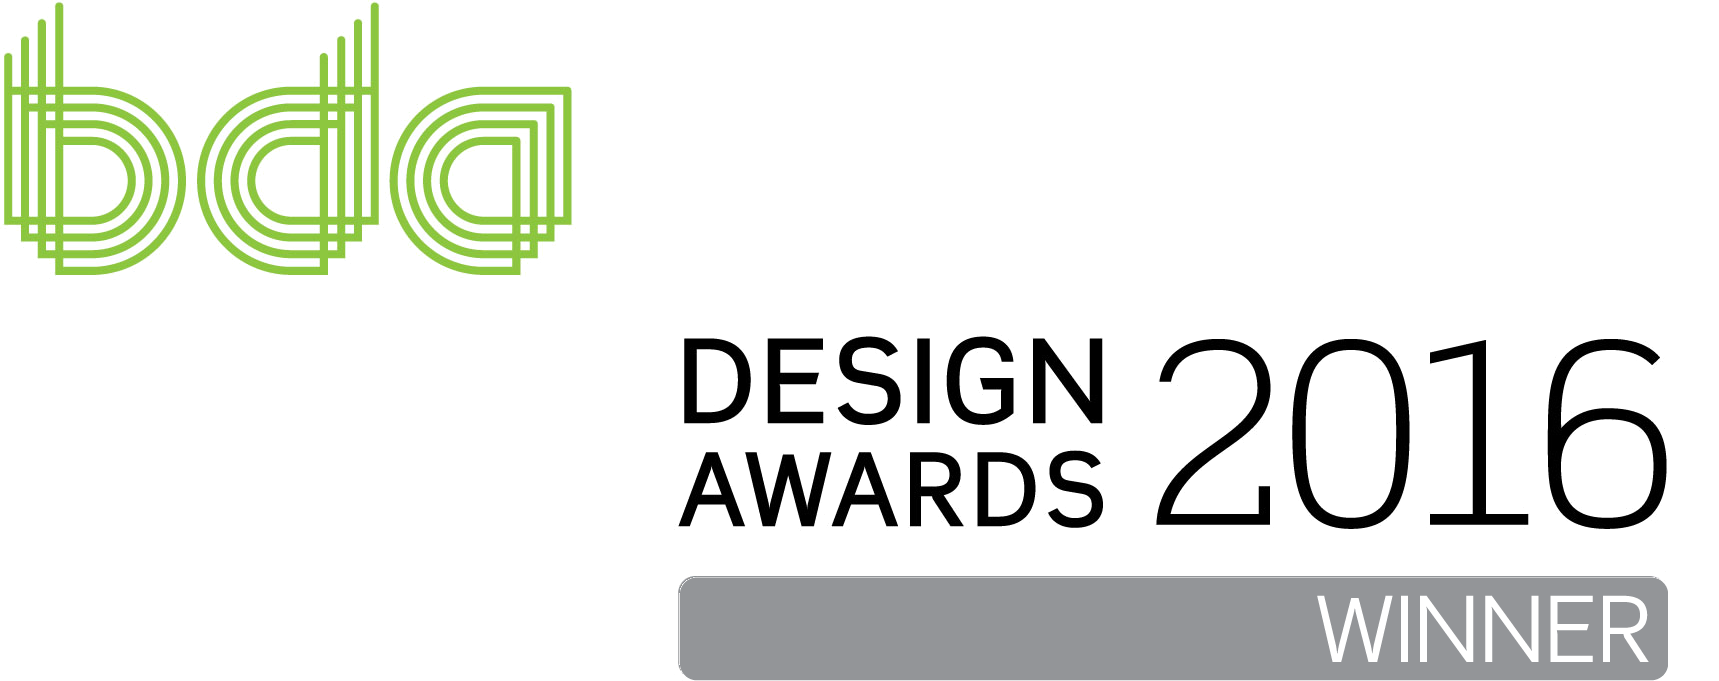 BDA Designs Awards Logo Winner